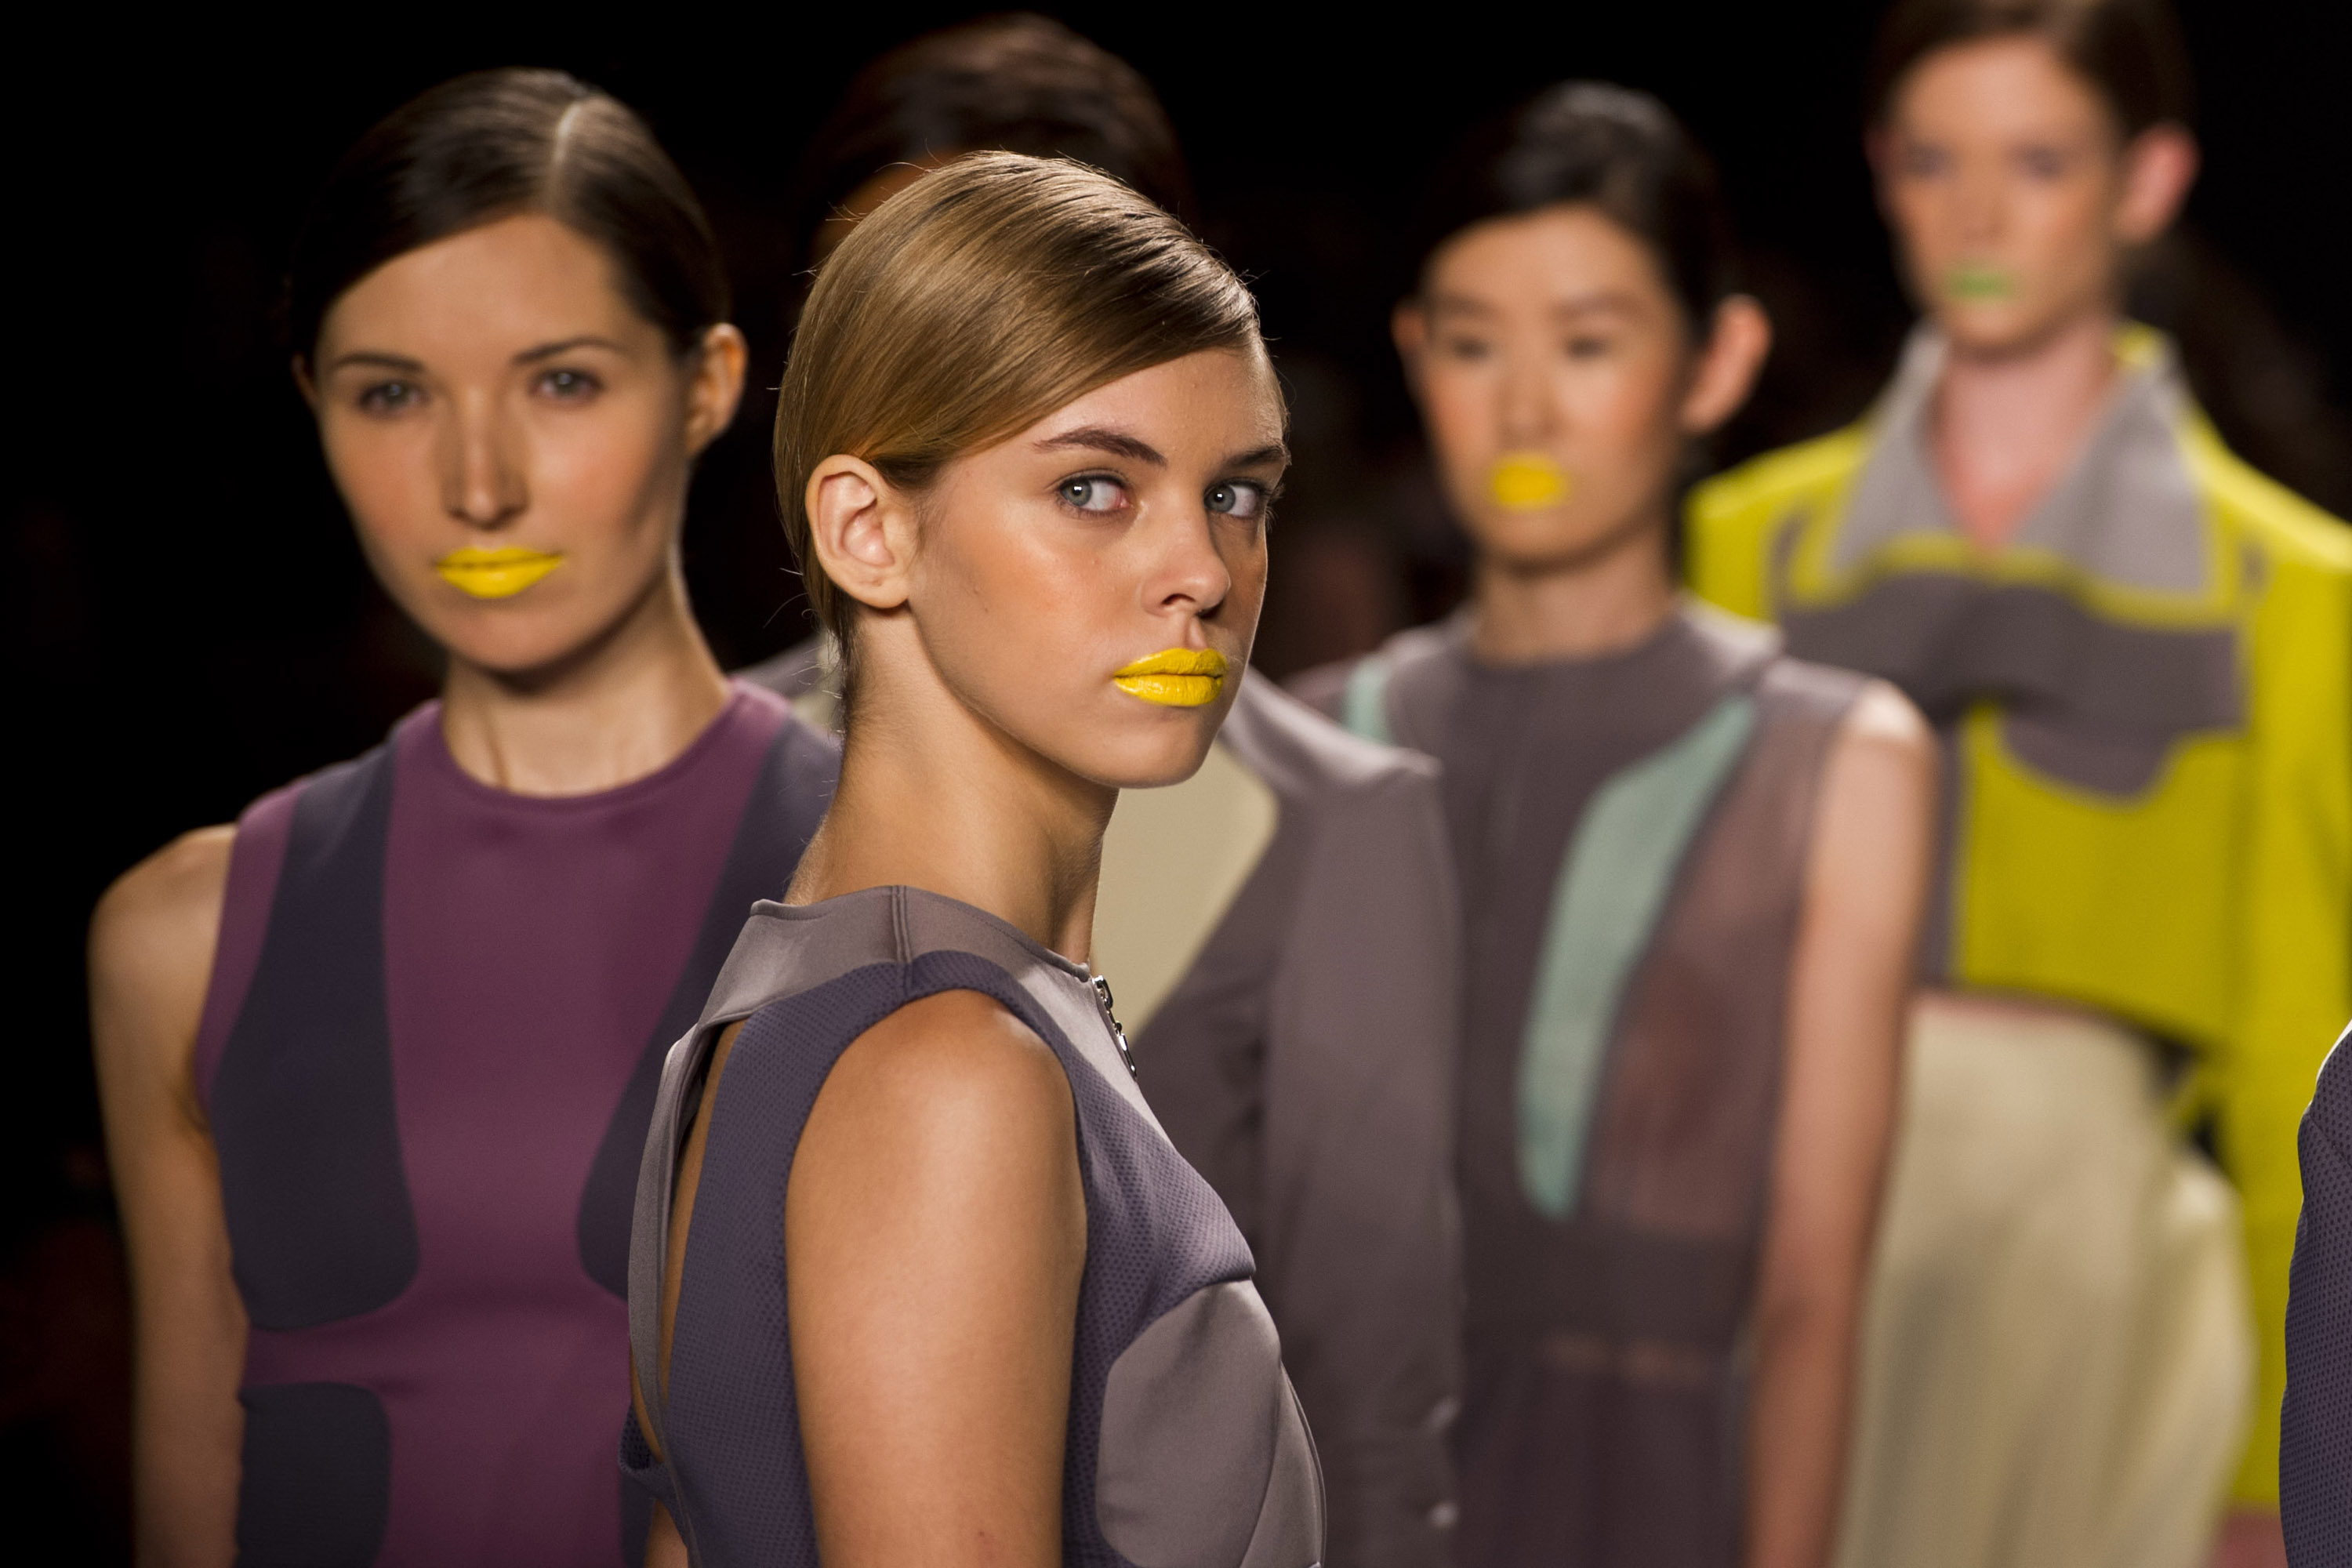 'Project Runway' Fatigue: Ideas for a New Format